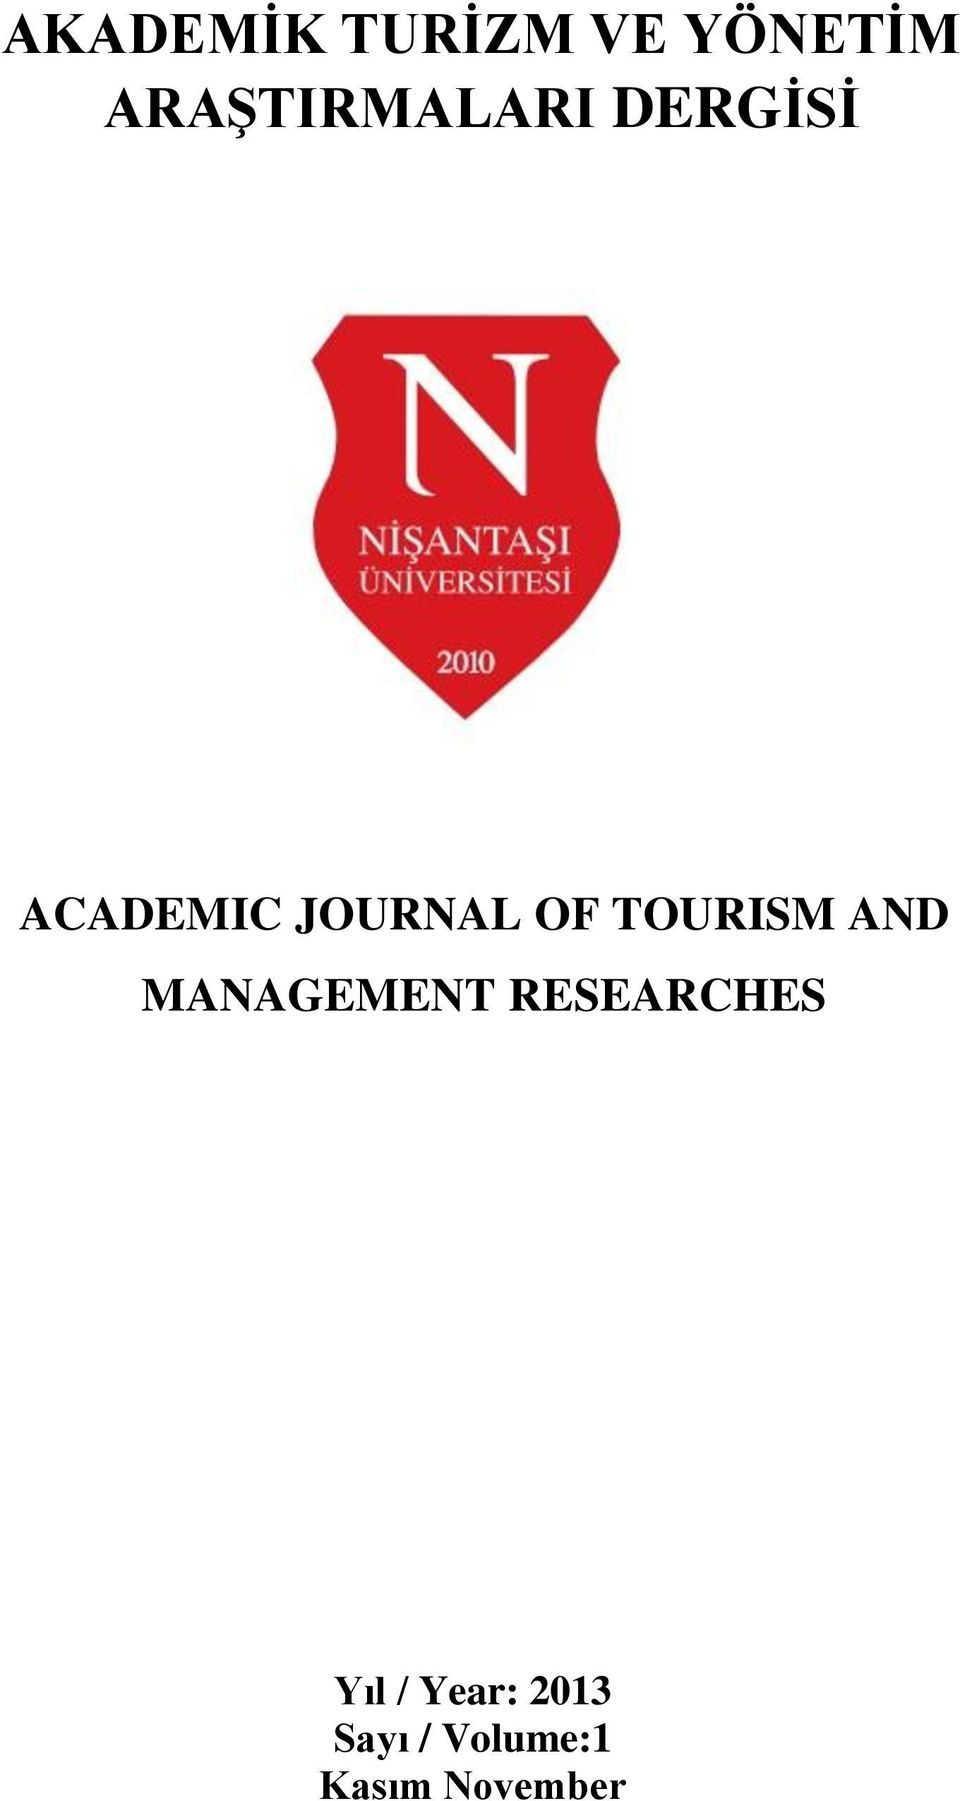 JOURNAL OF TOURISM AND MANAGEMENT